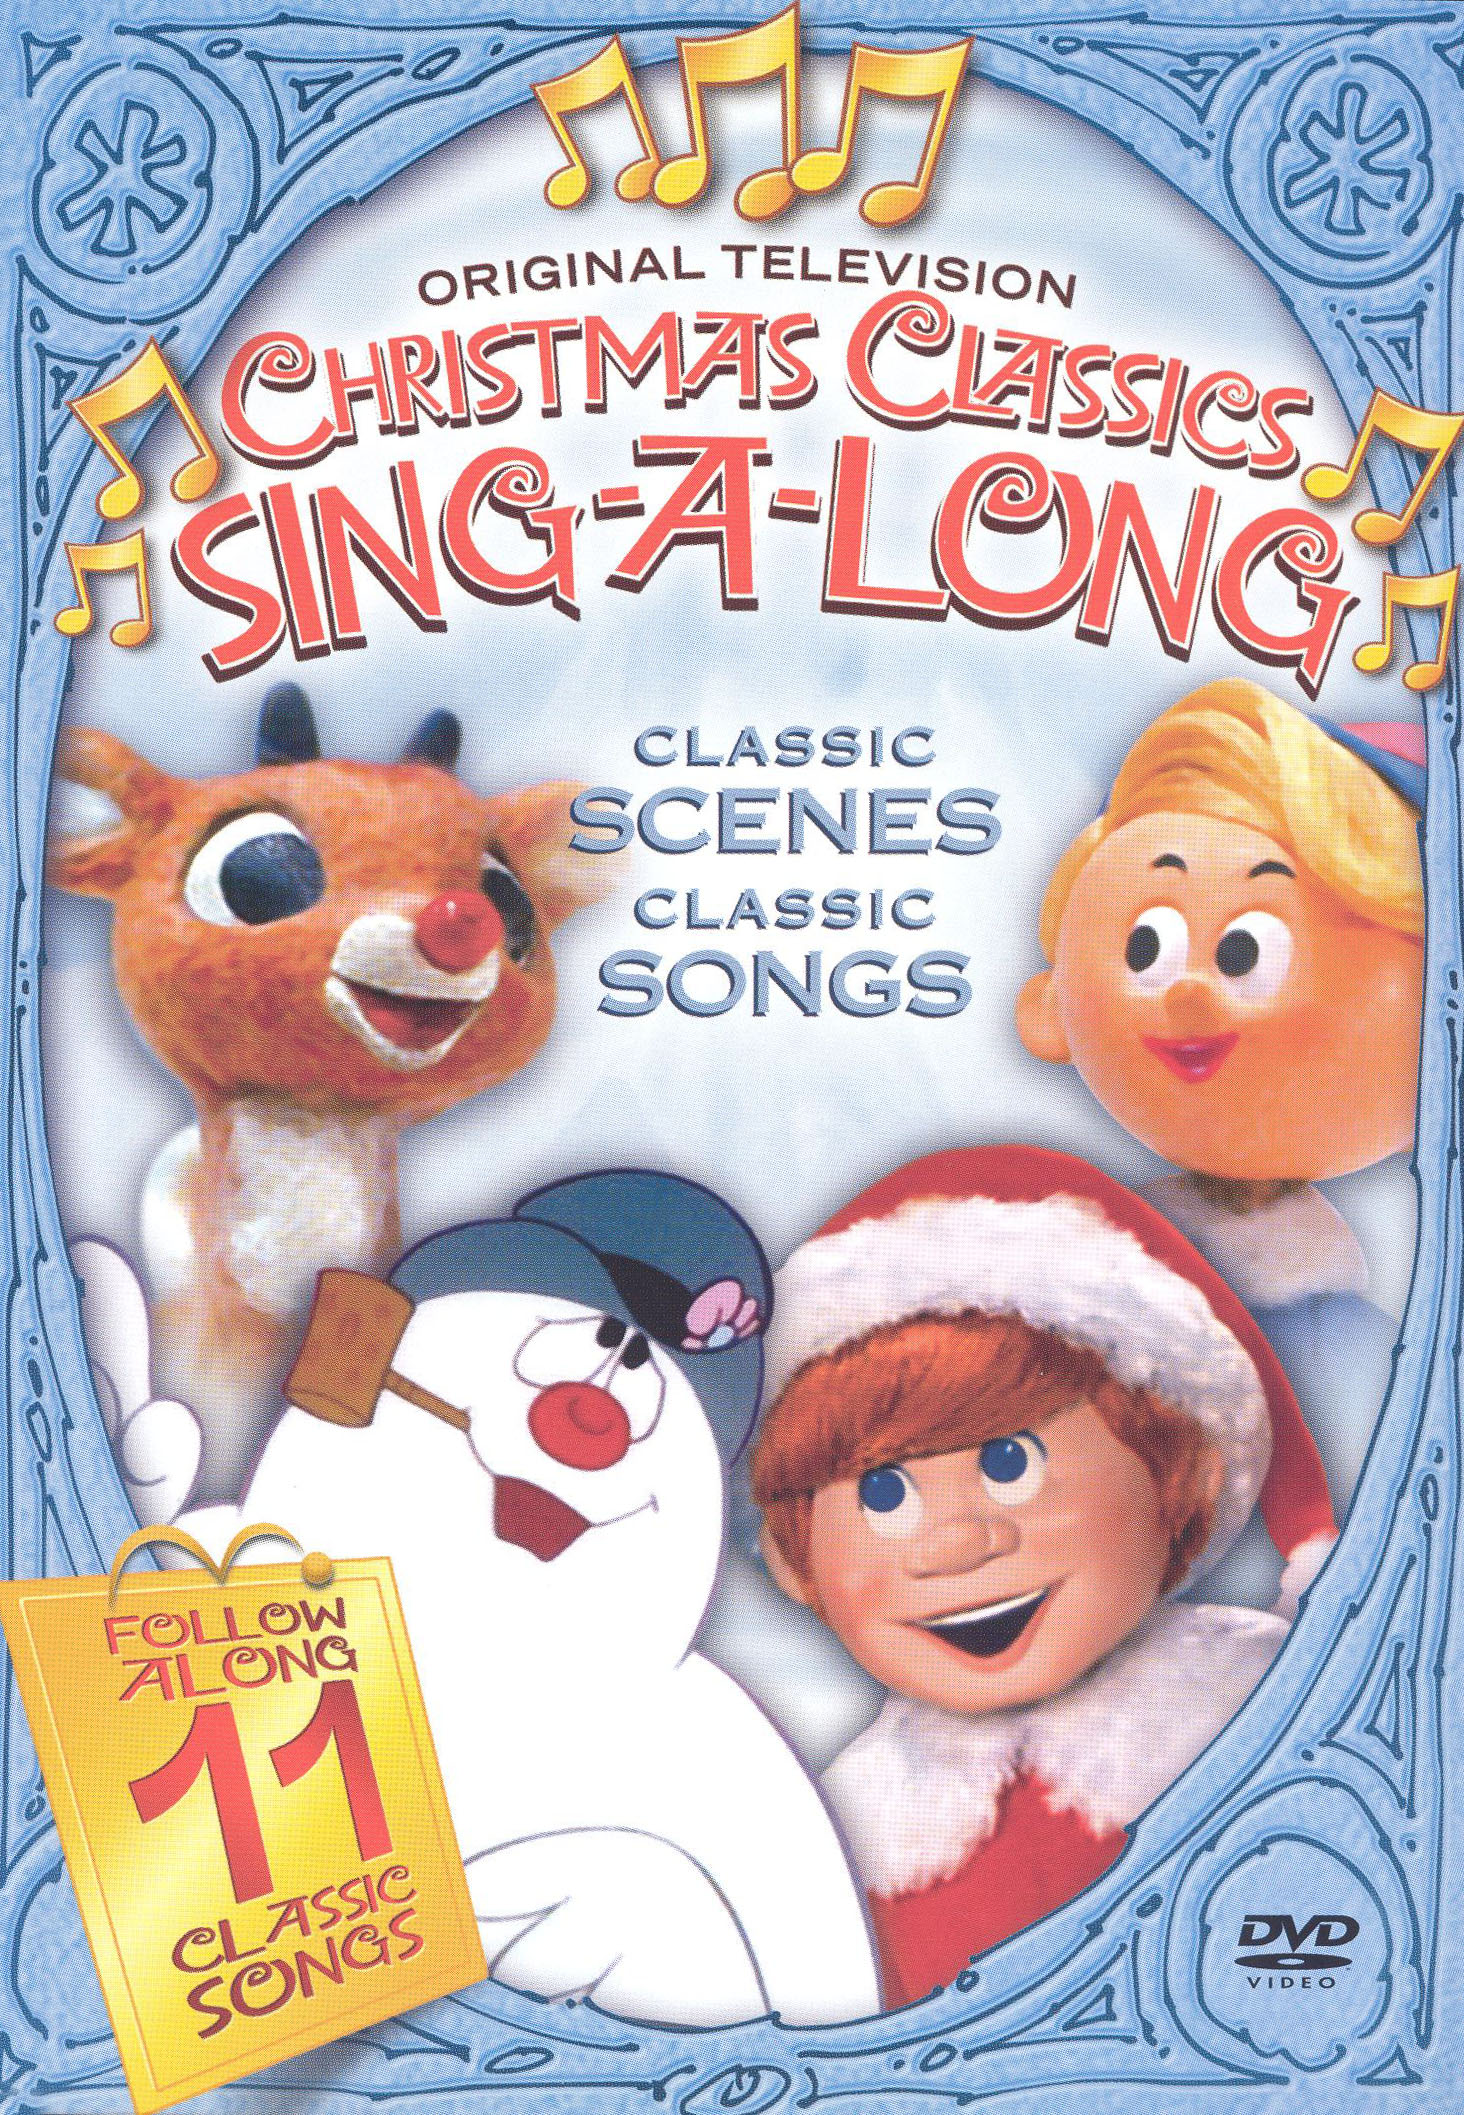 the original television christmas classics sing along - Original Christmas Classics